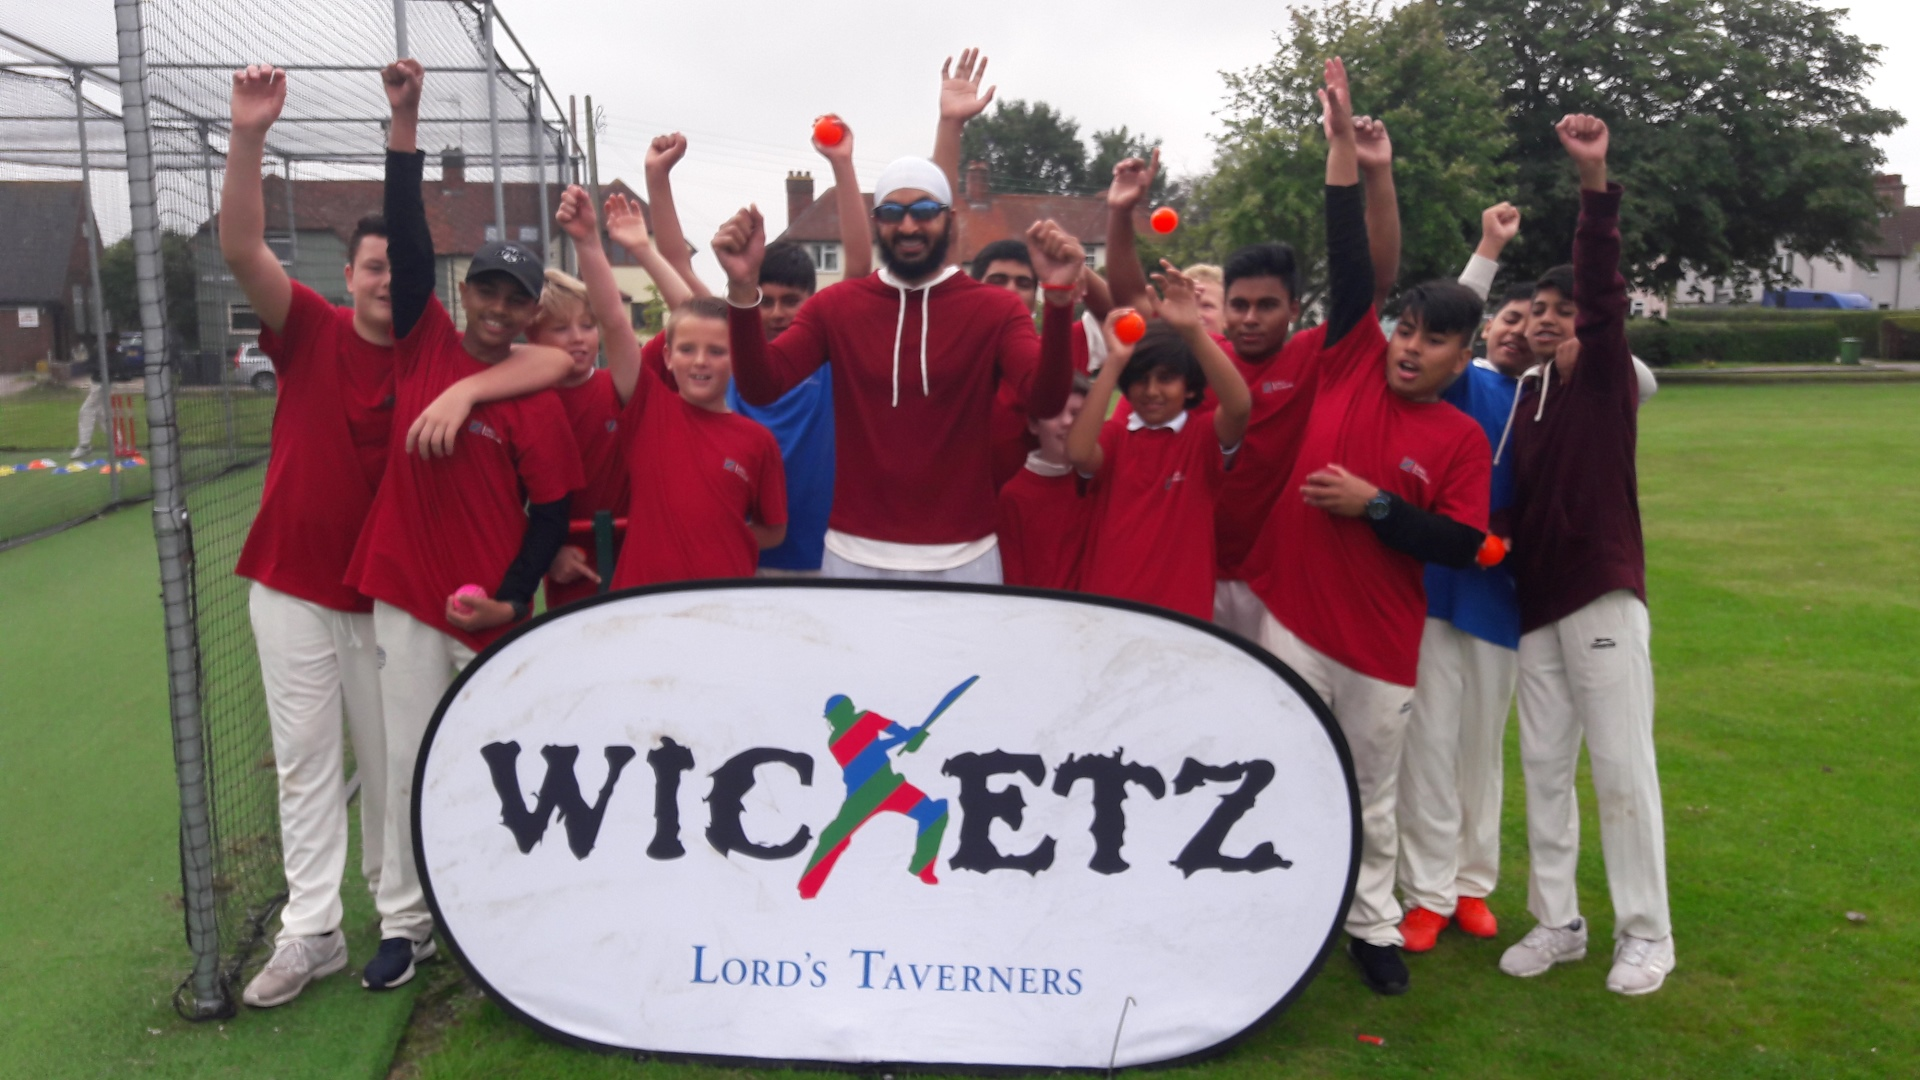 Bristol youngsters learn about cricket and life at Lord's Taverners Festival